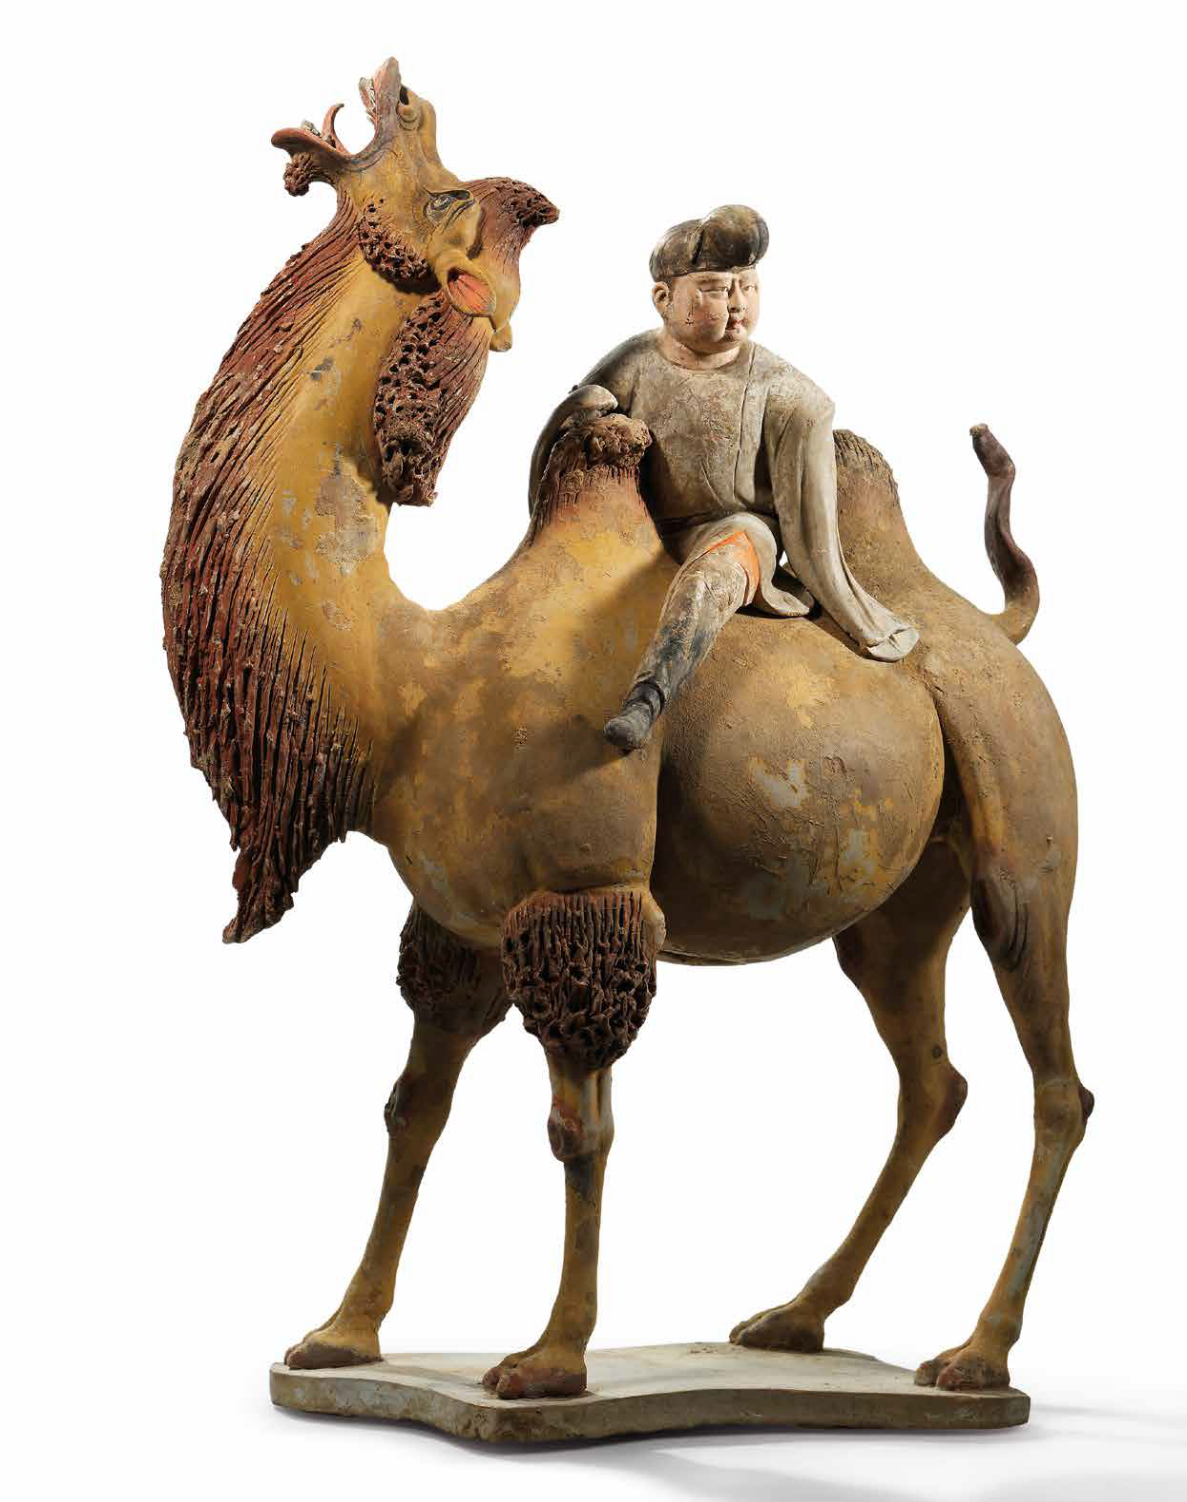 A finely painted pottery figure of a Bactrian camel and rider, Tang dynasty (618-907)